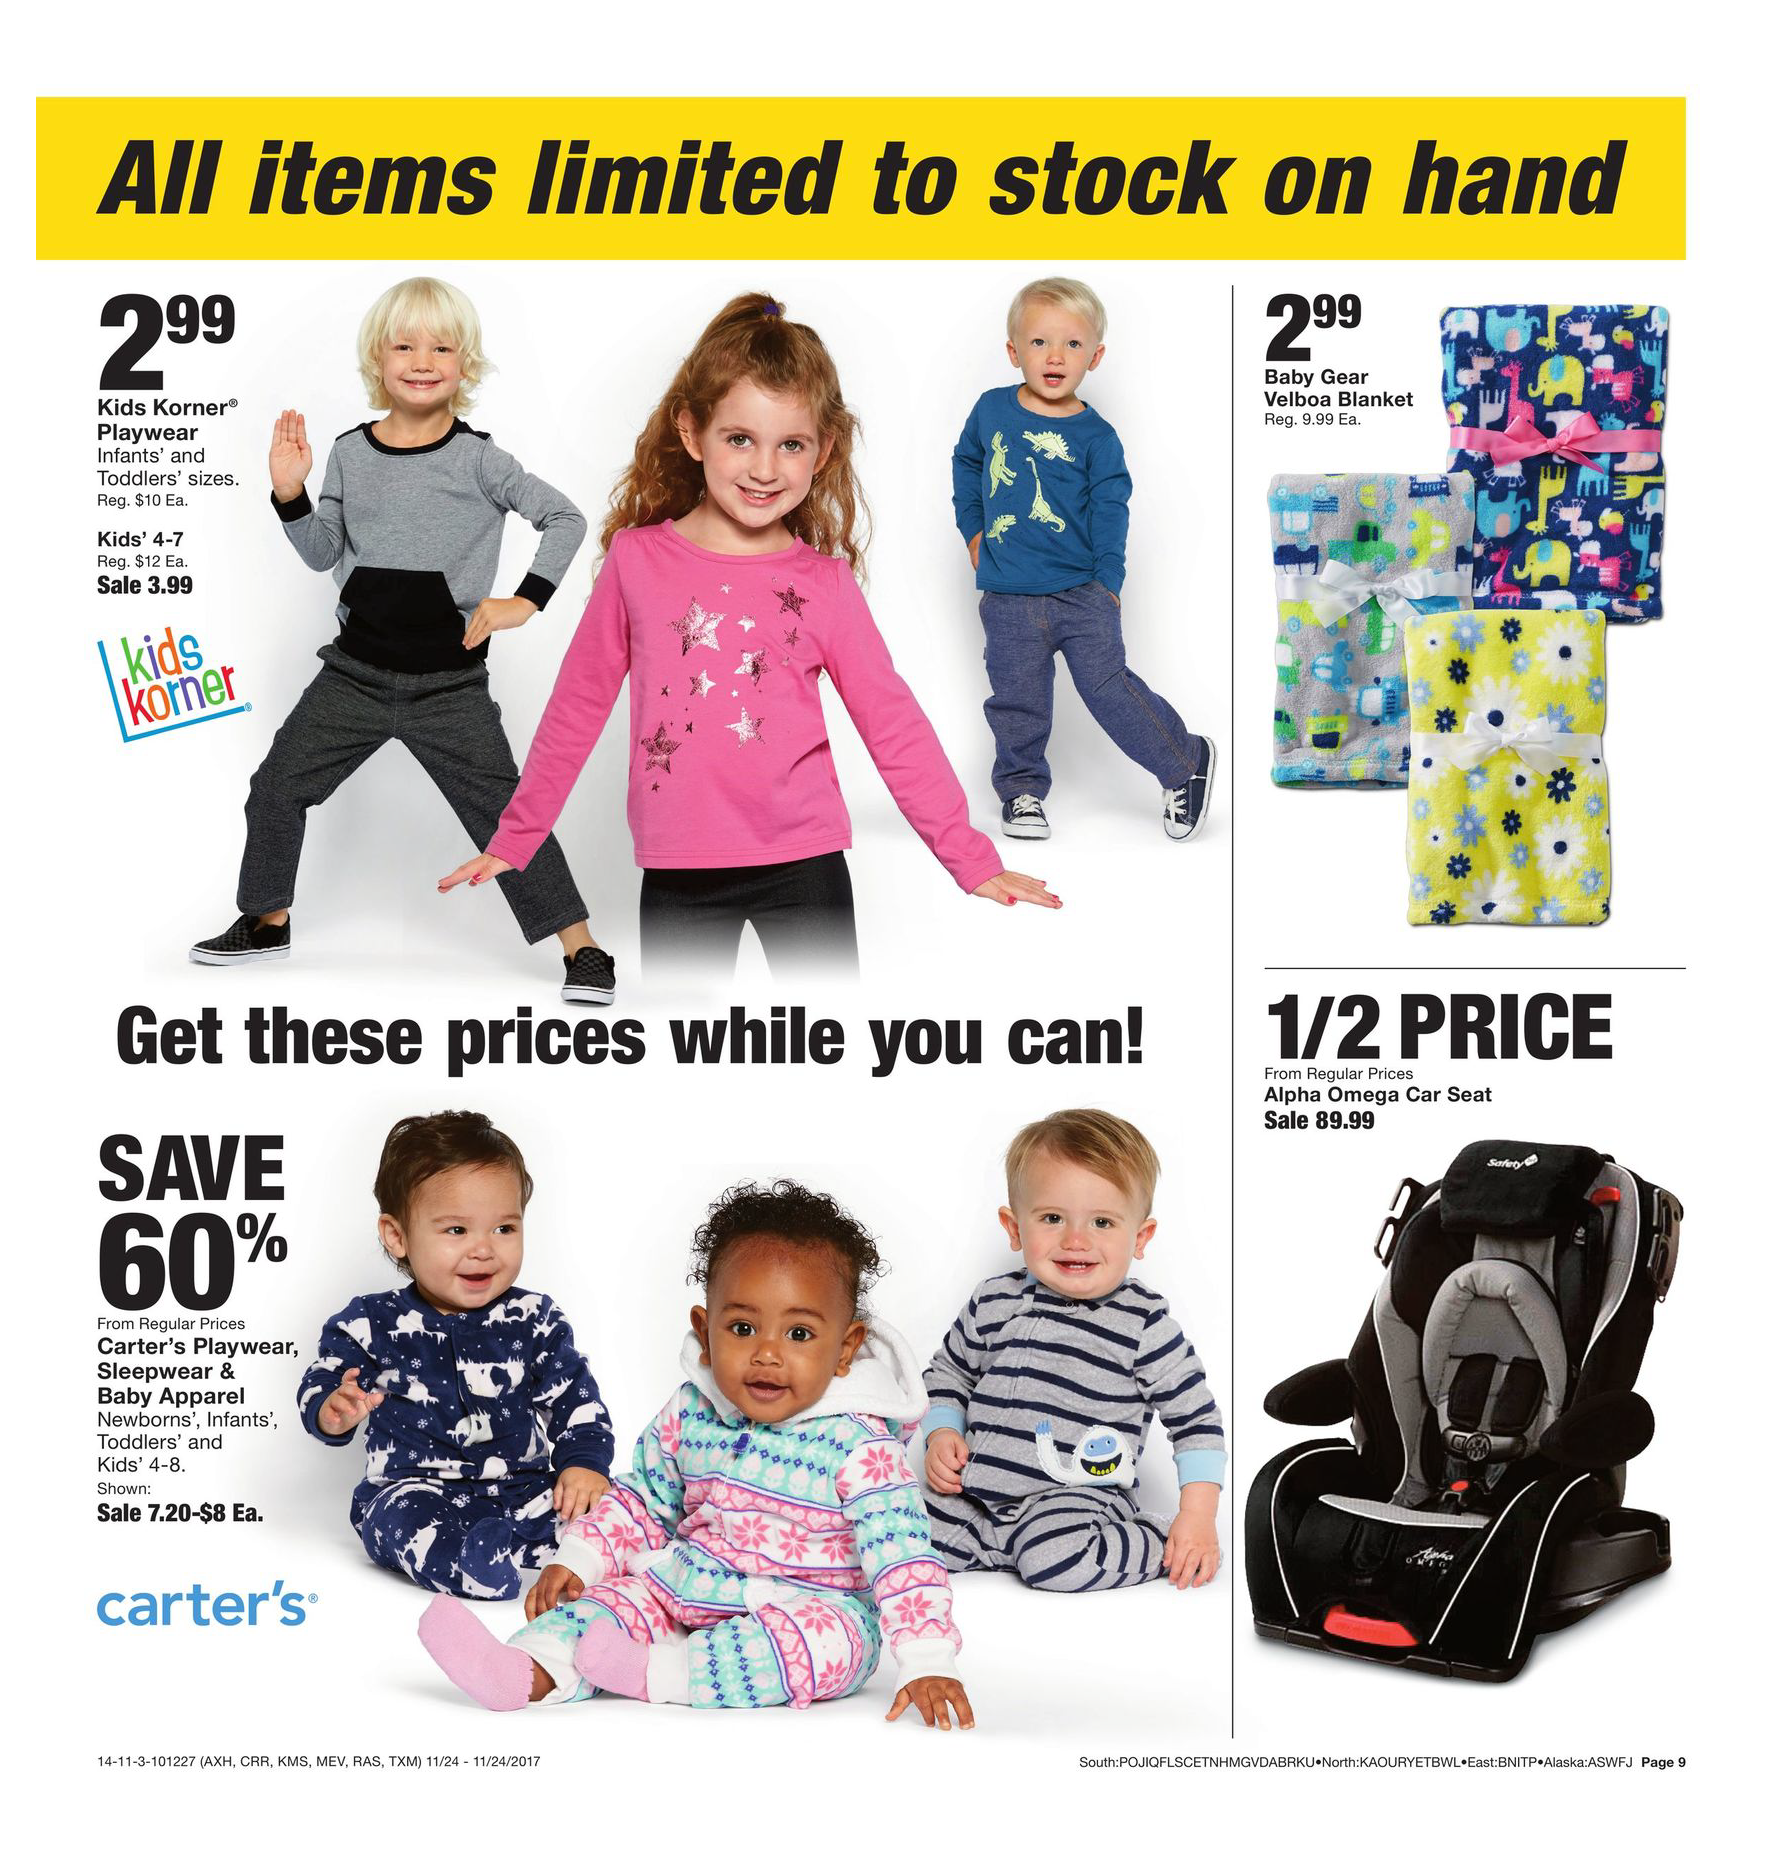 Fred Meyer Black Friday 2018 Ads and Deals